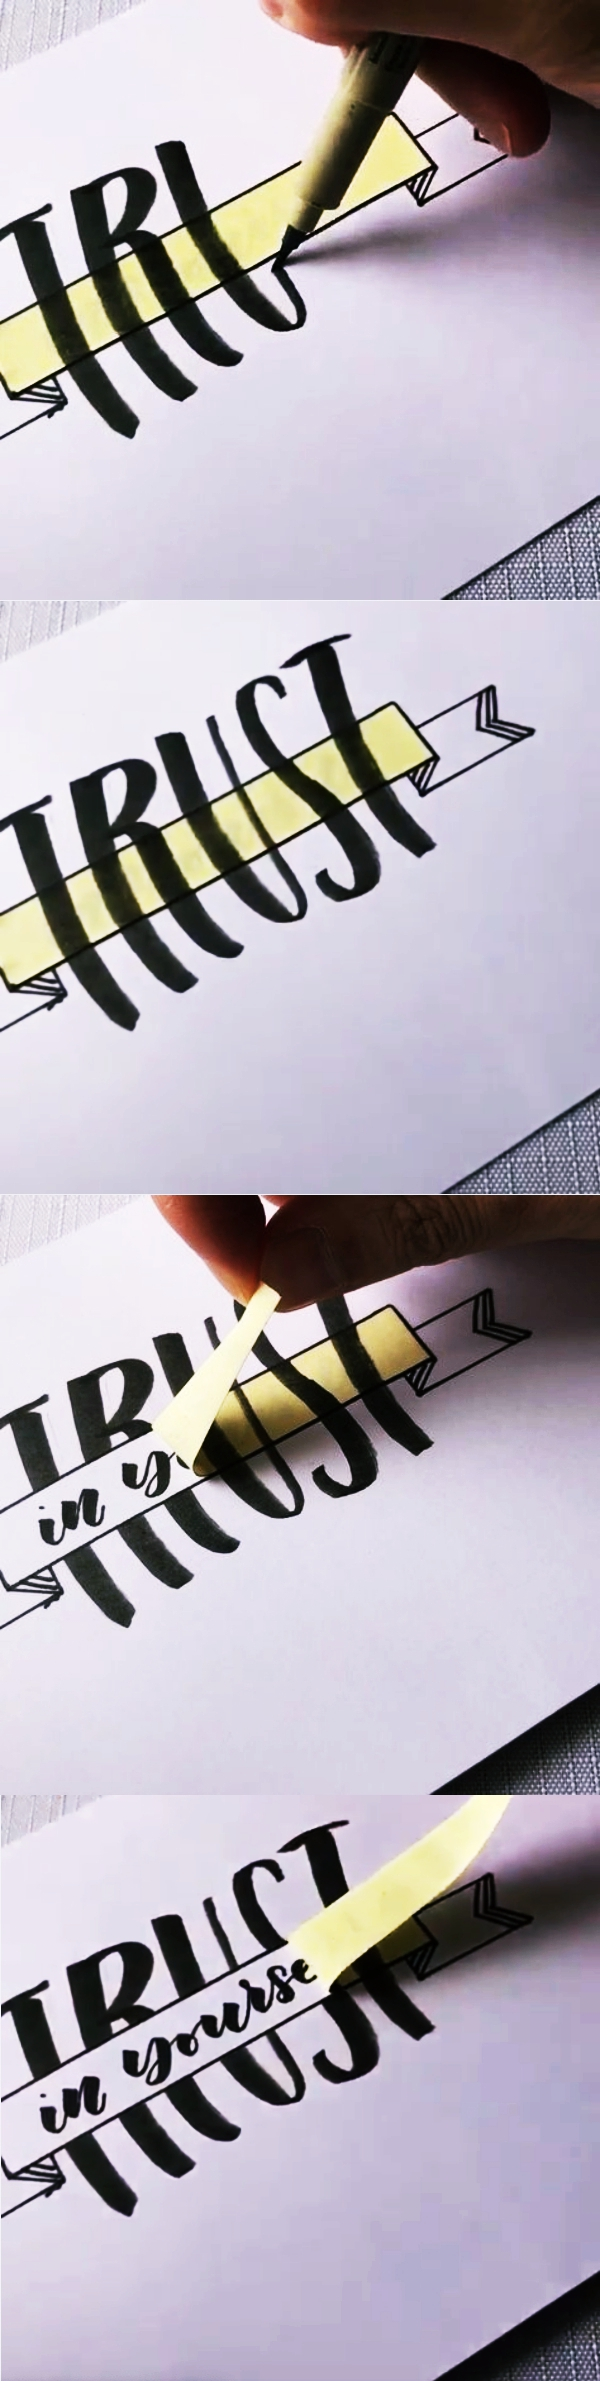 Calligraphy Alphabets and Writing Styles for Beginners